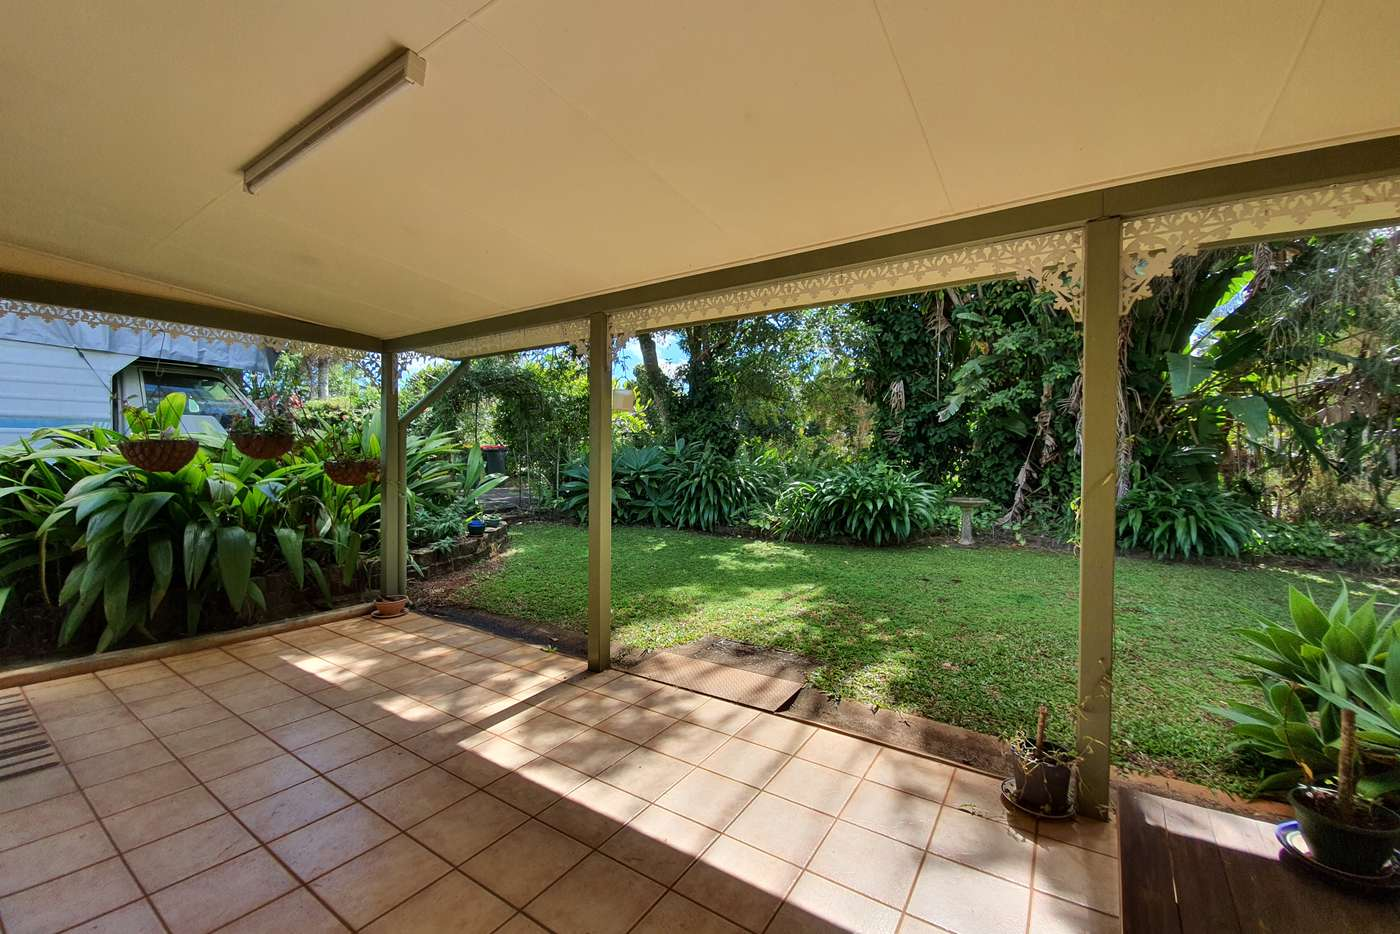 Main view of Homely house listing, 3 Cassia Street, Yungaburra QLD 4884